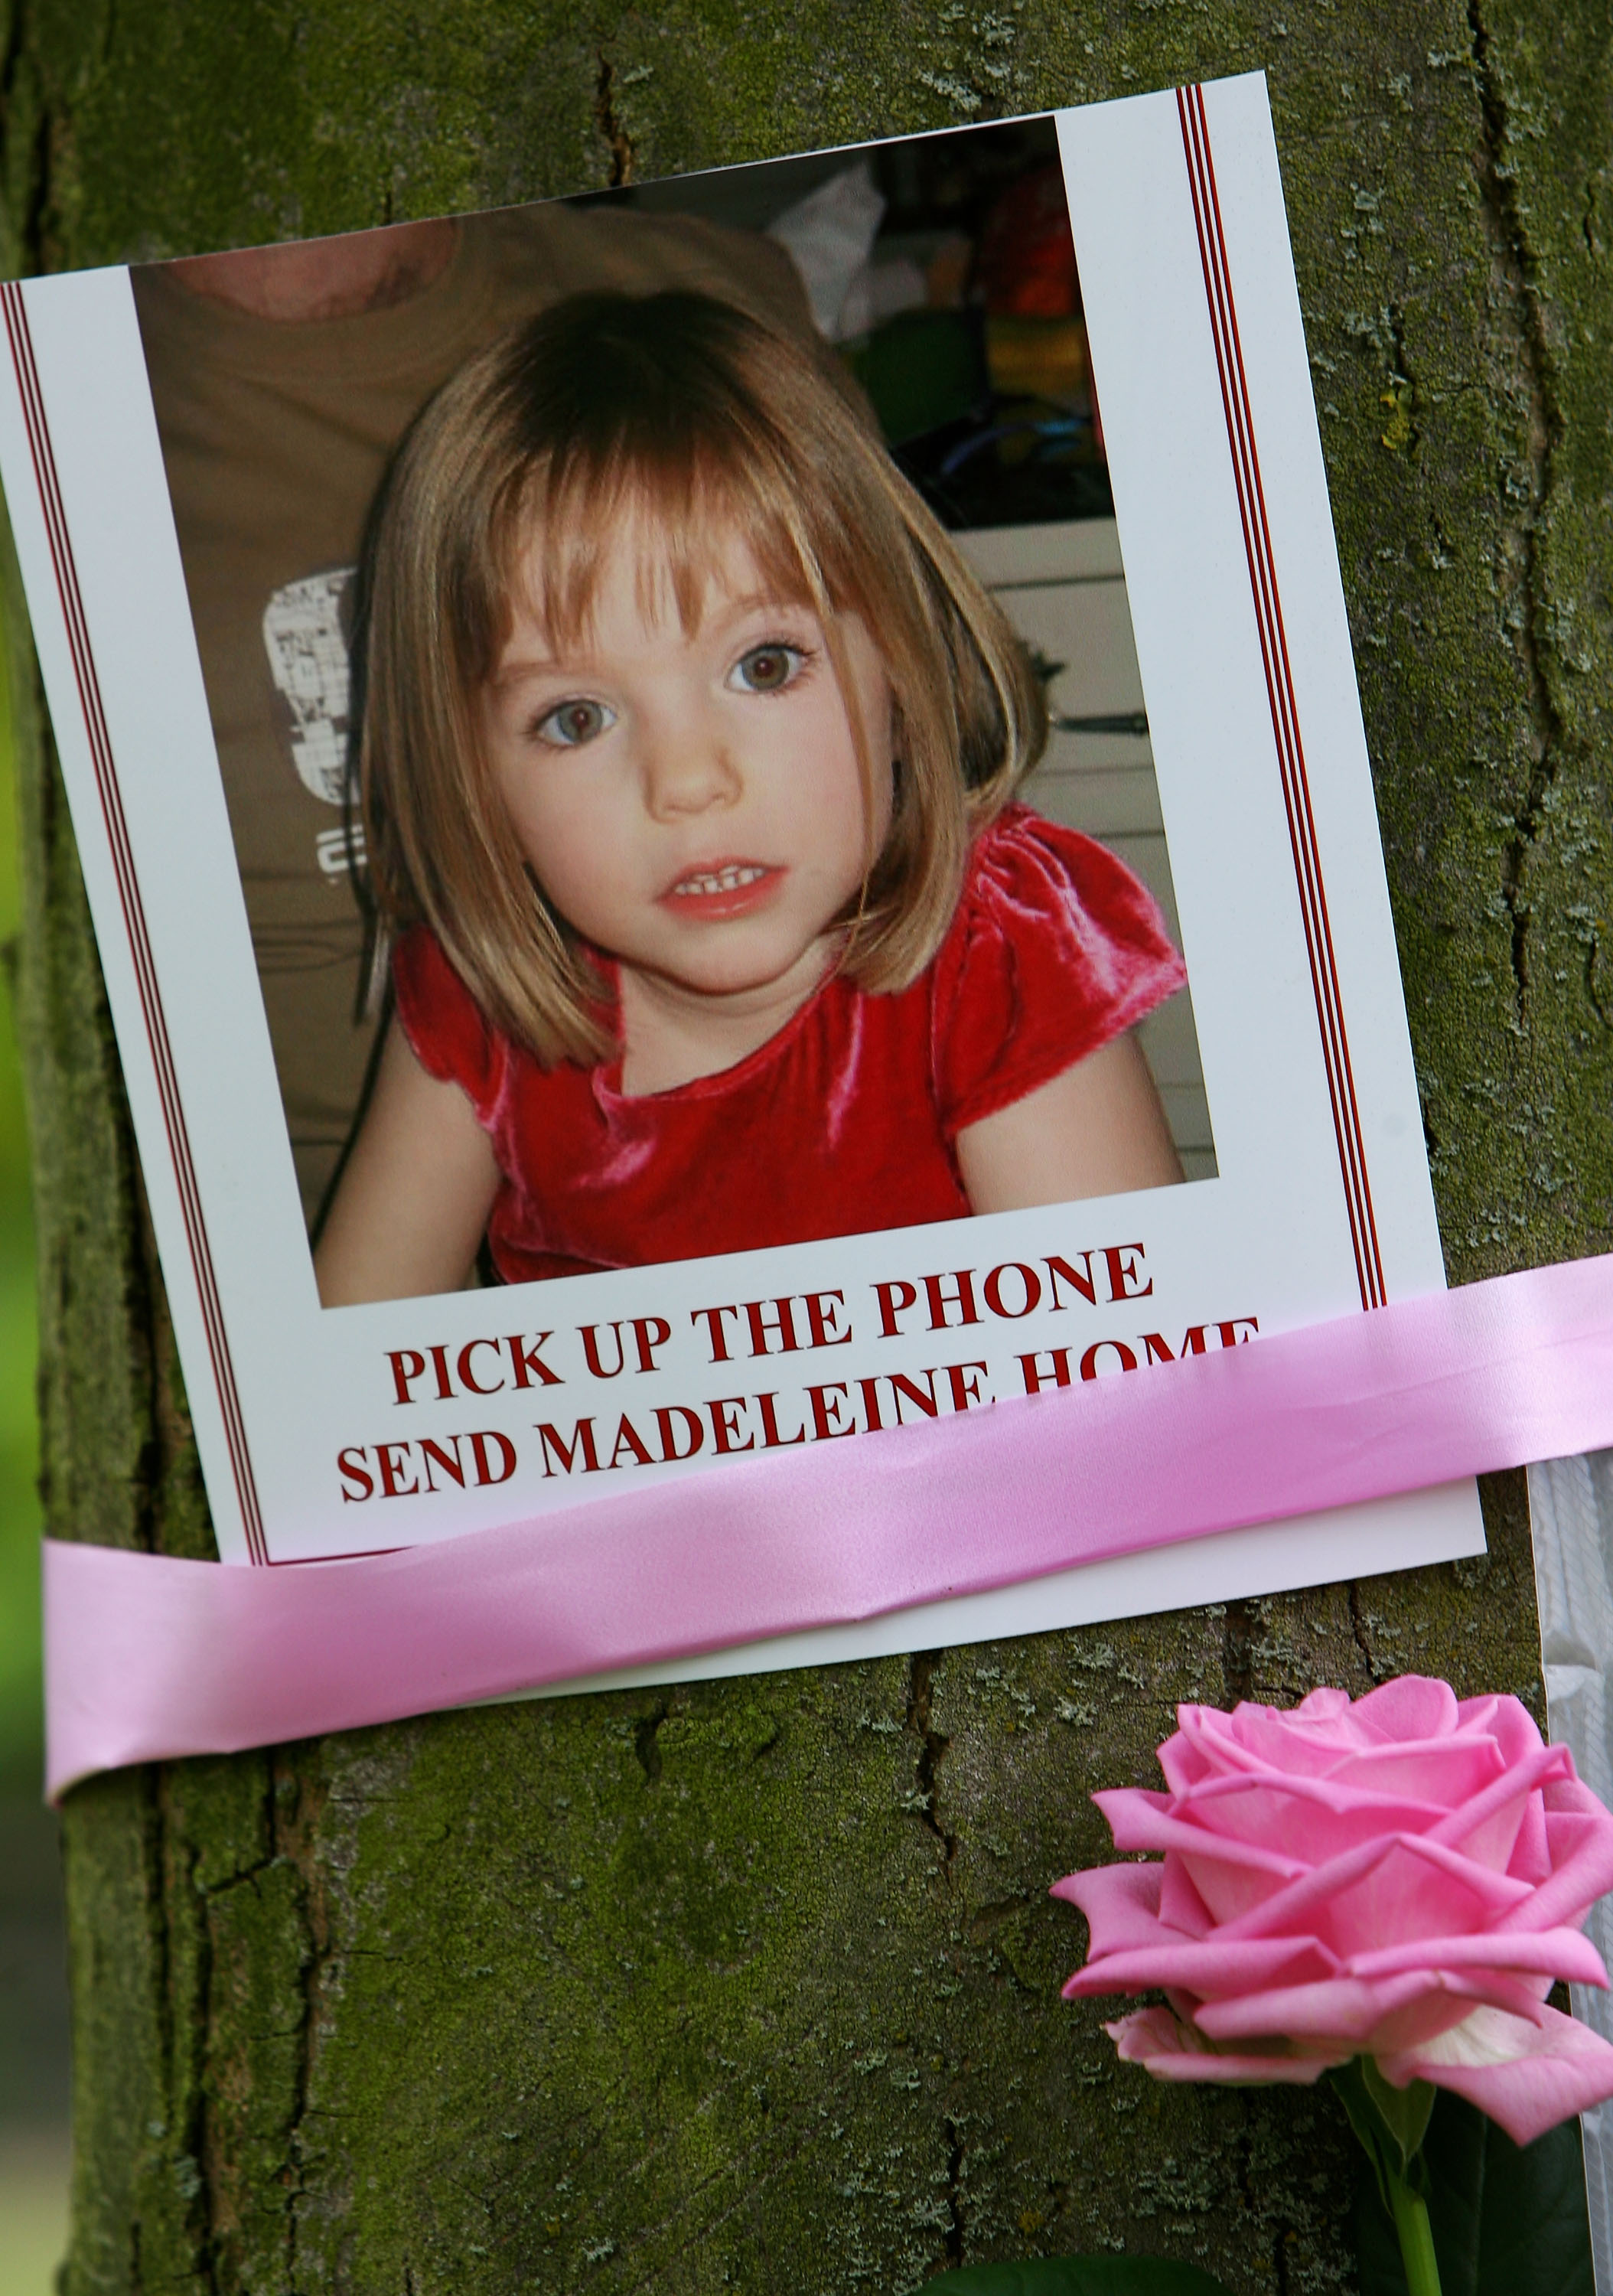 Tributes are seen in Rothley Village Centre showing support to Madeleine McCann on April 12, 2007, in Rothley, England. (Getty)